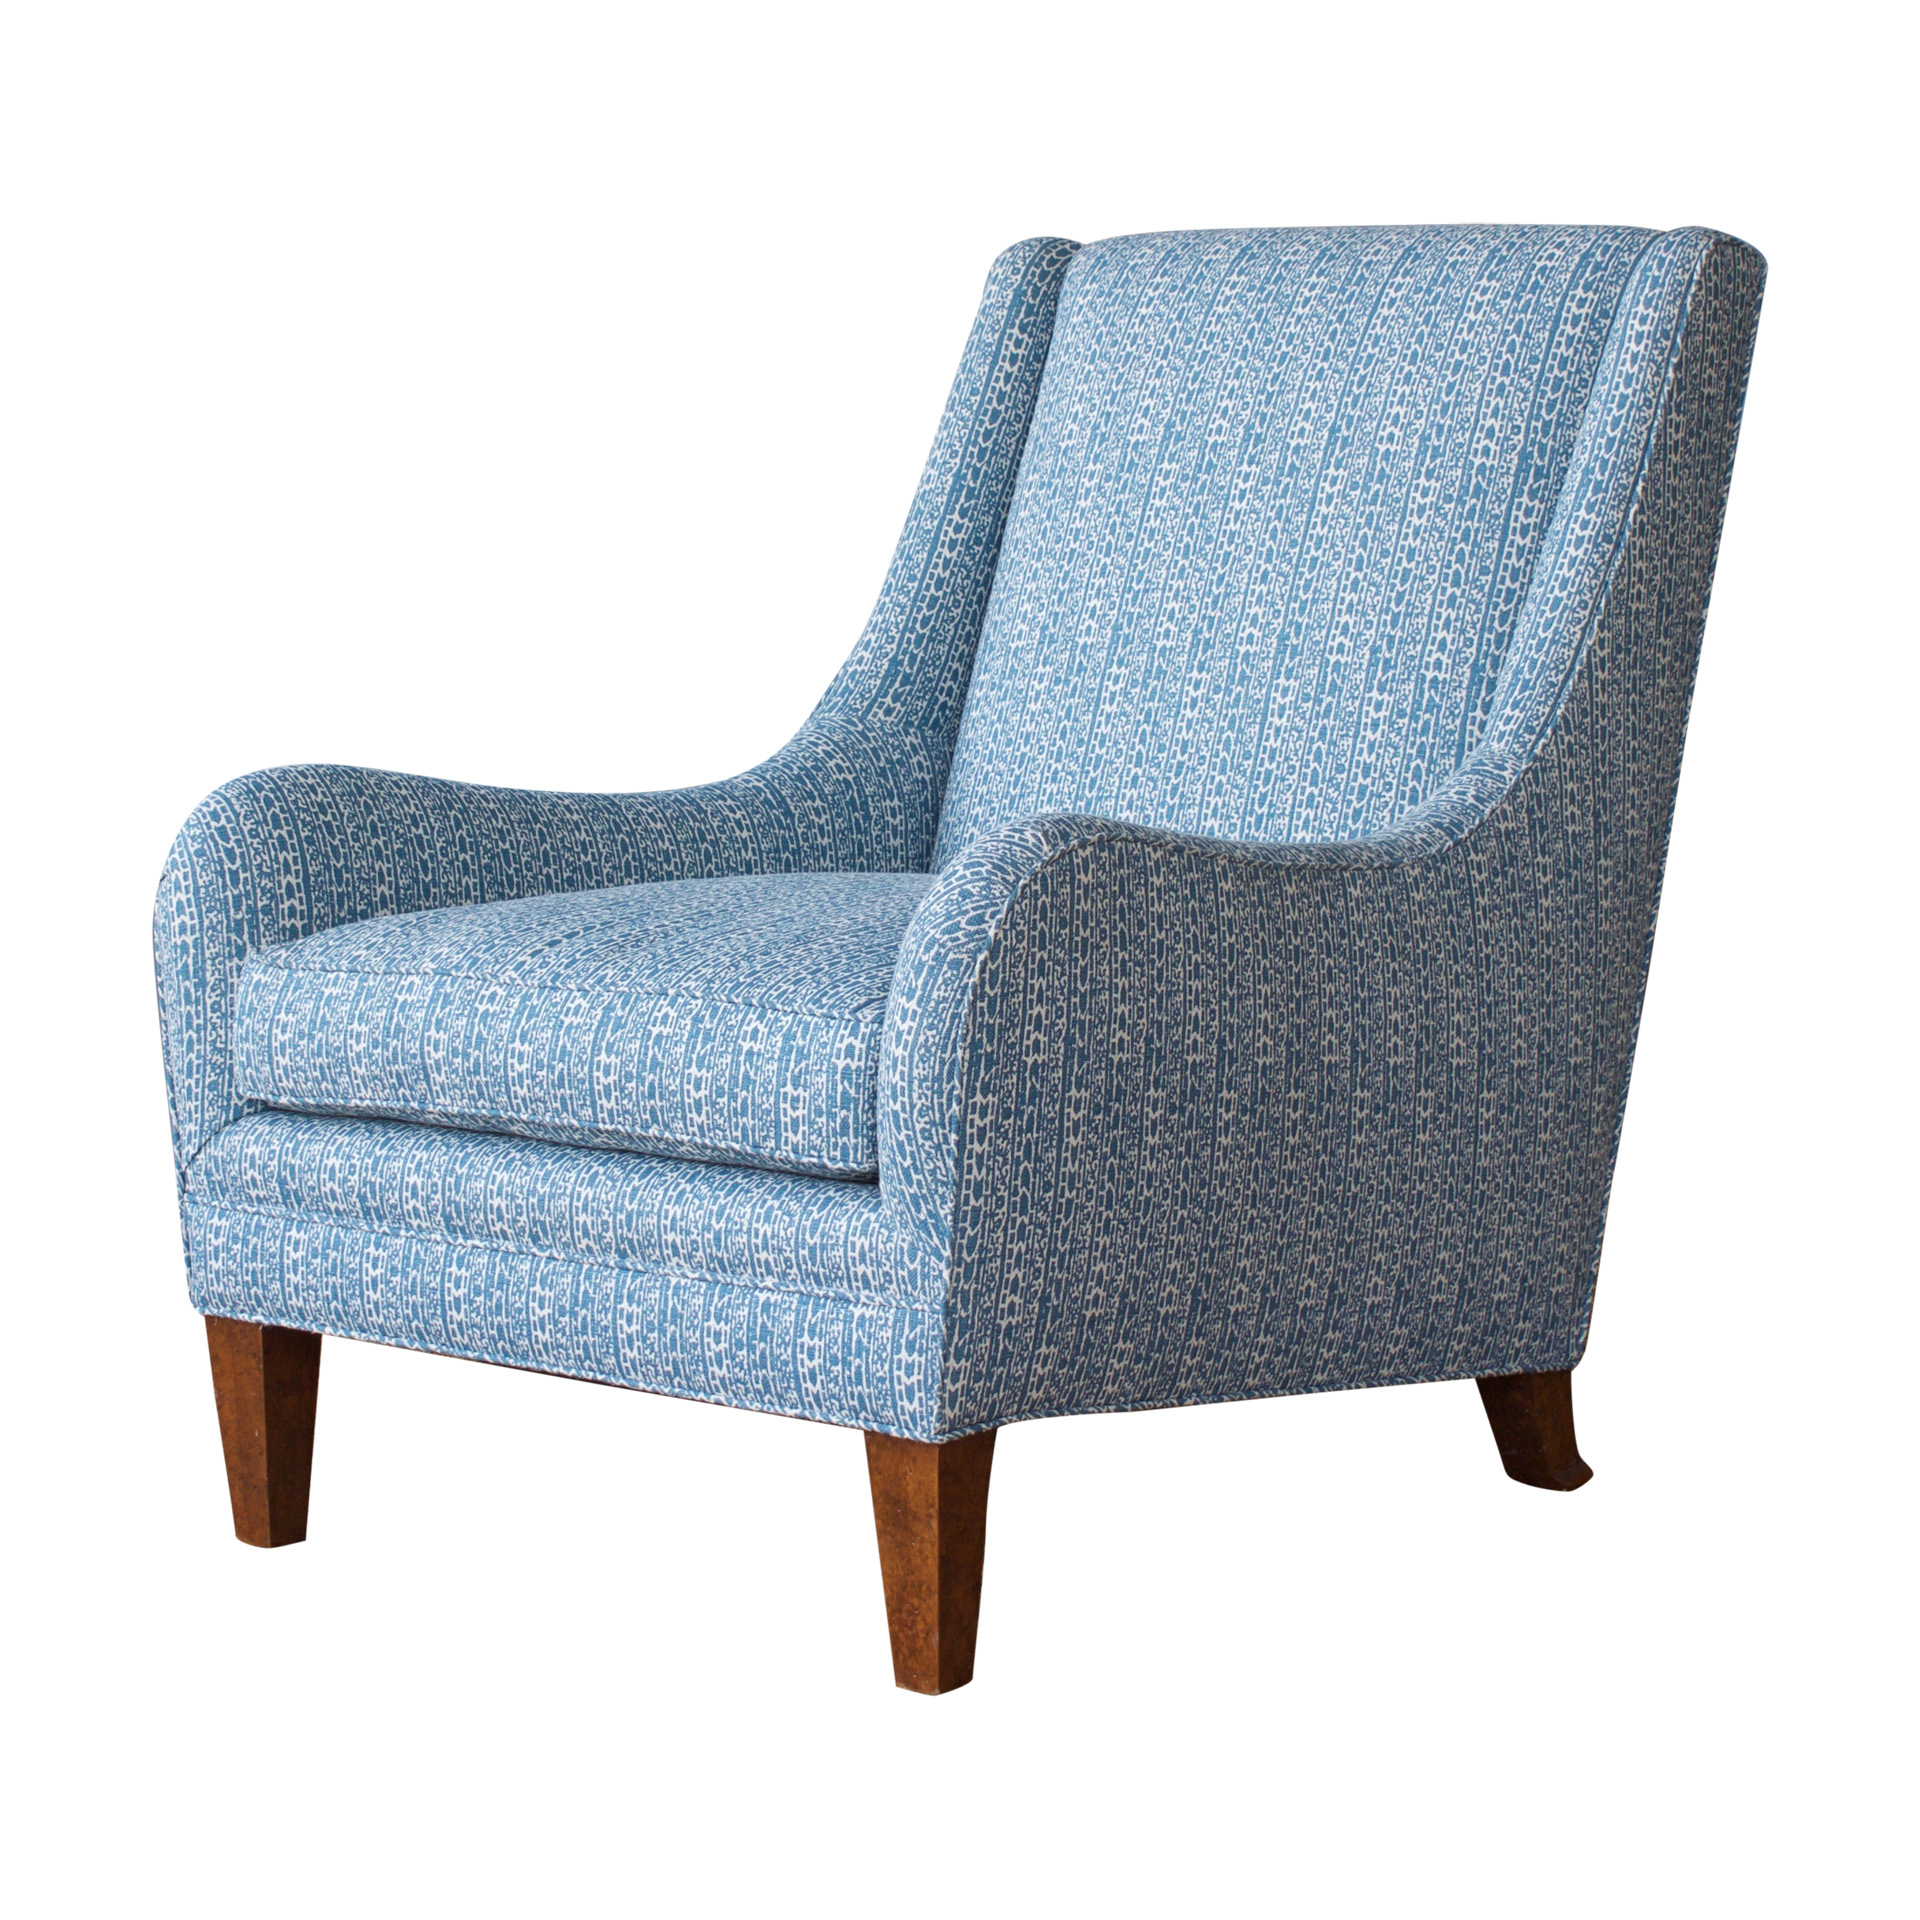 Zoom image Cole Armchair Traditional, Transitional, MidCentury Modern,  Wood, Upholstery Fabric, Armchairs Club